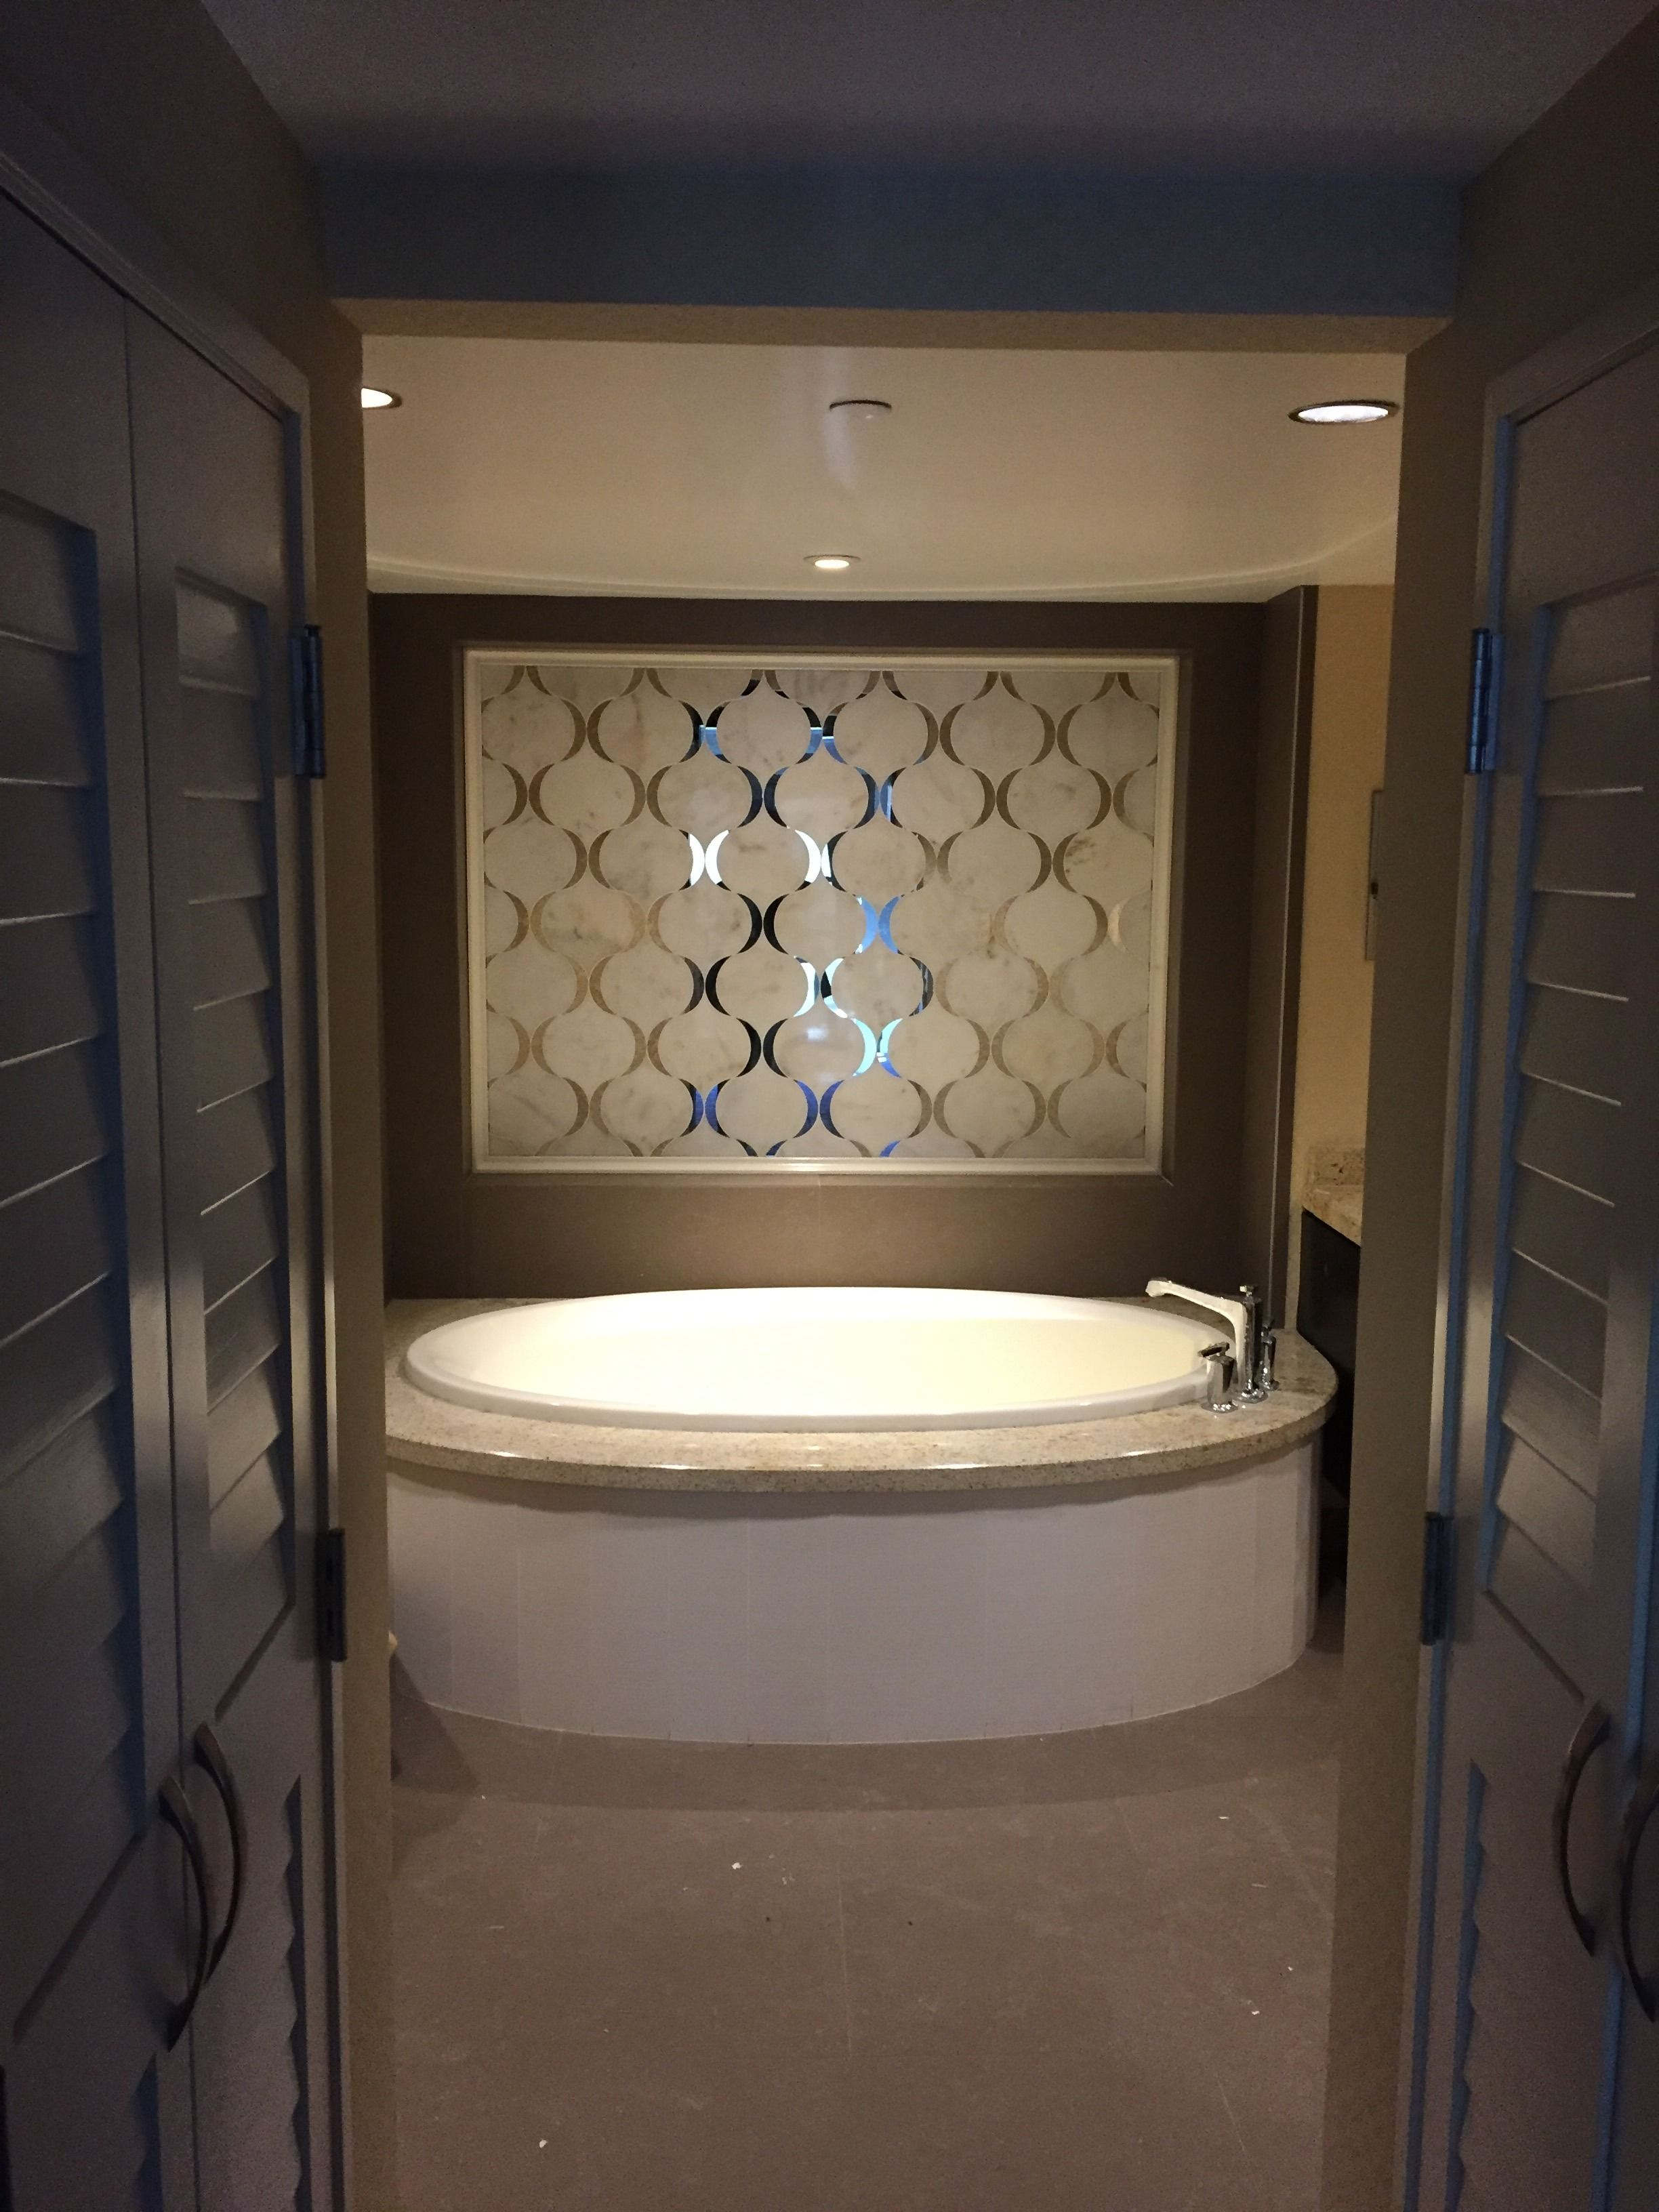 Mosaic liners art pattern mirrorred bathroom wall discount tiles - Justdesign Your Feature Wall Today Like This Fw Ribbon Custom Marble And Mirror Mosaic Designed By Sa Dezign Studio For The Guest Suites At Cache Creek